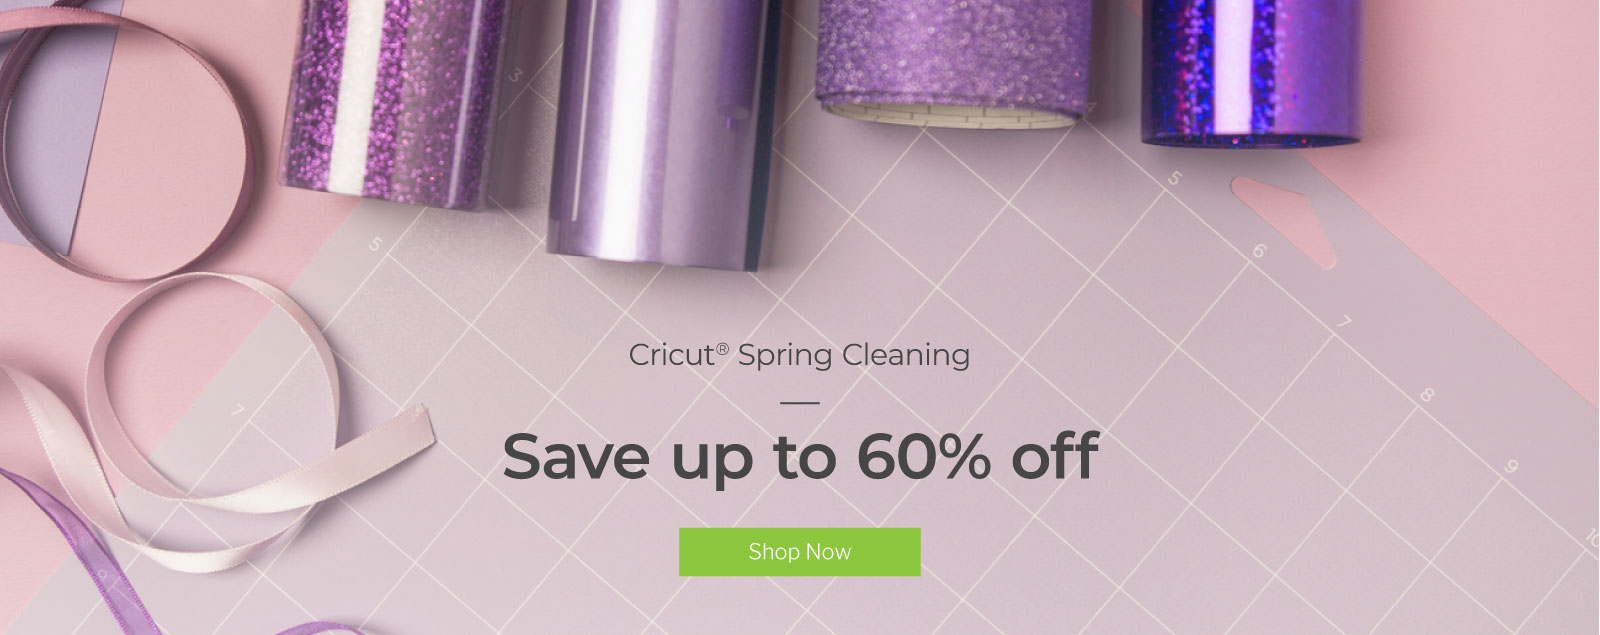 Cricut Spring Cleaning